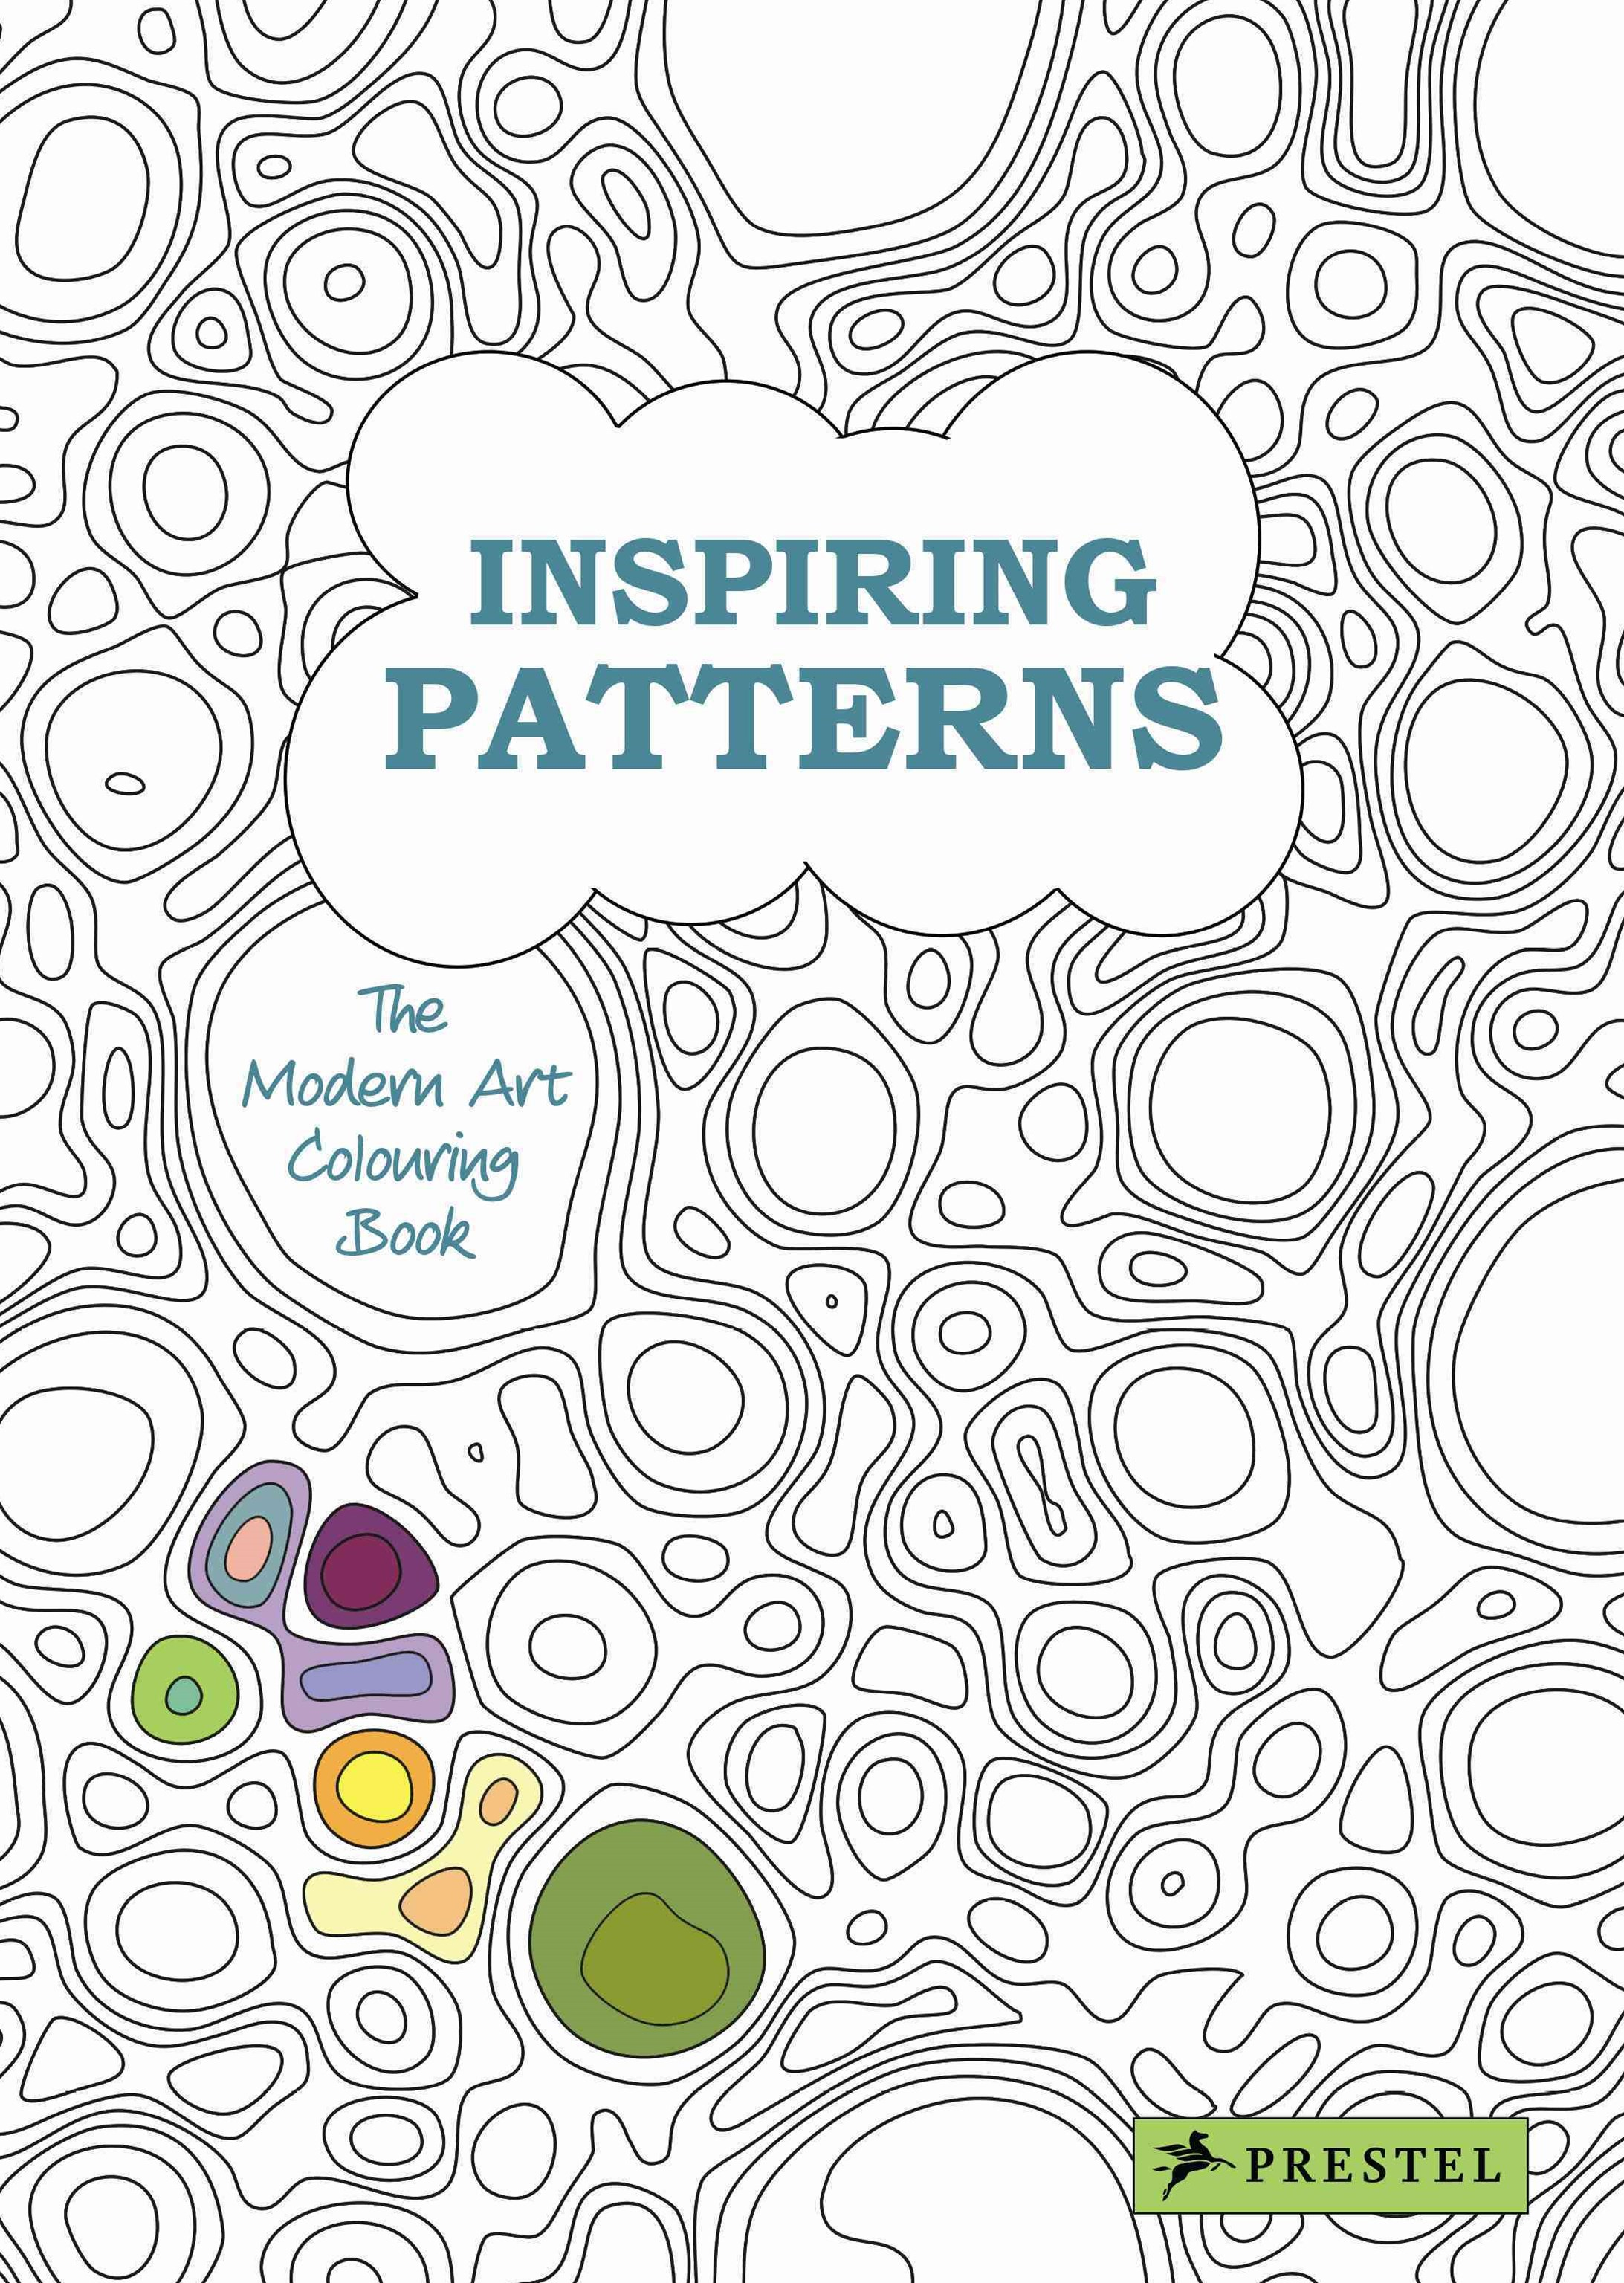 Inspiring Patterns: Modern Art Colouring Book